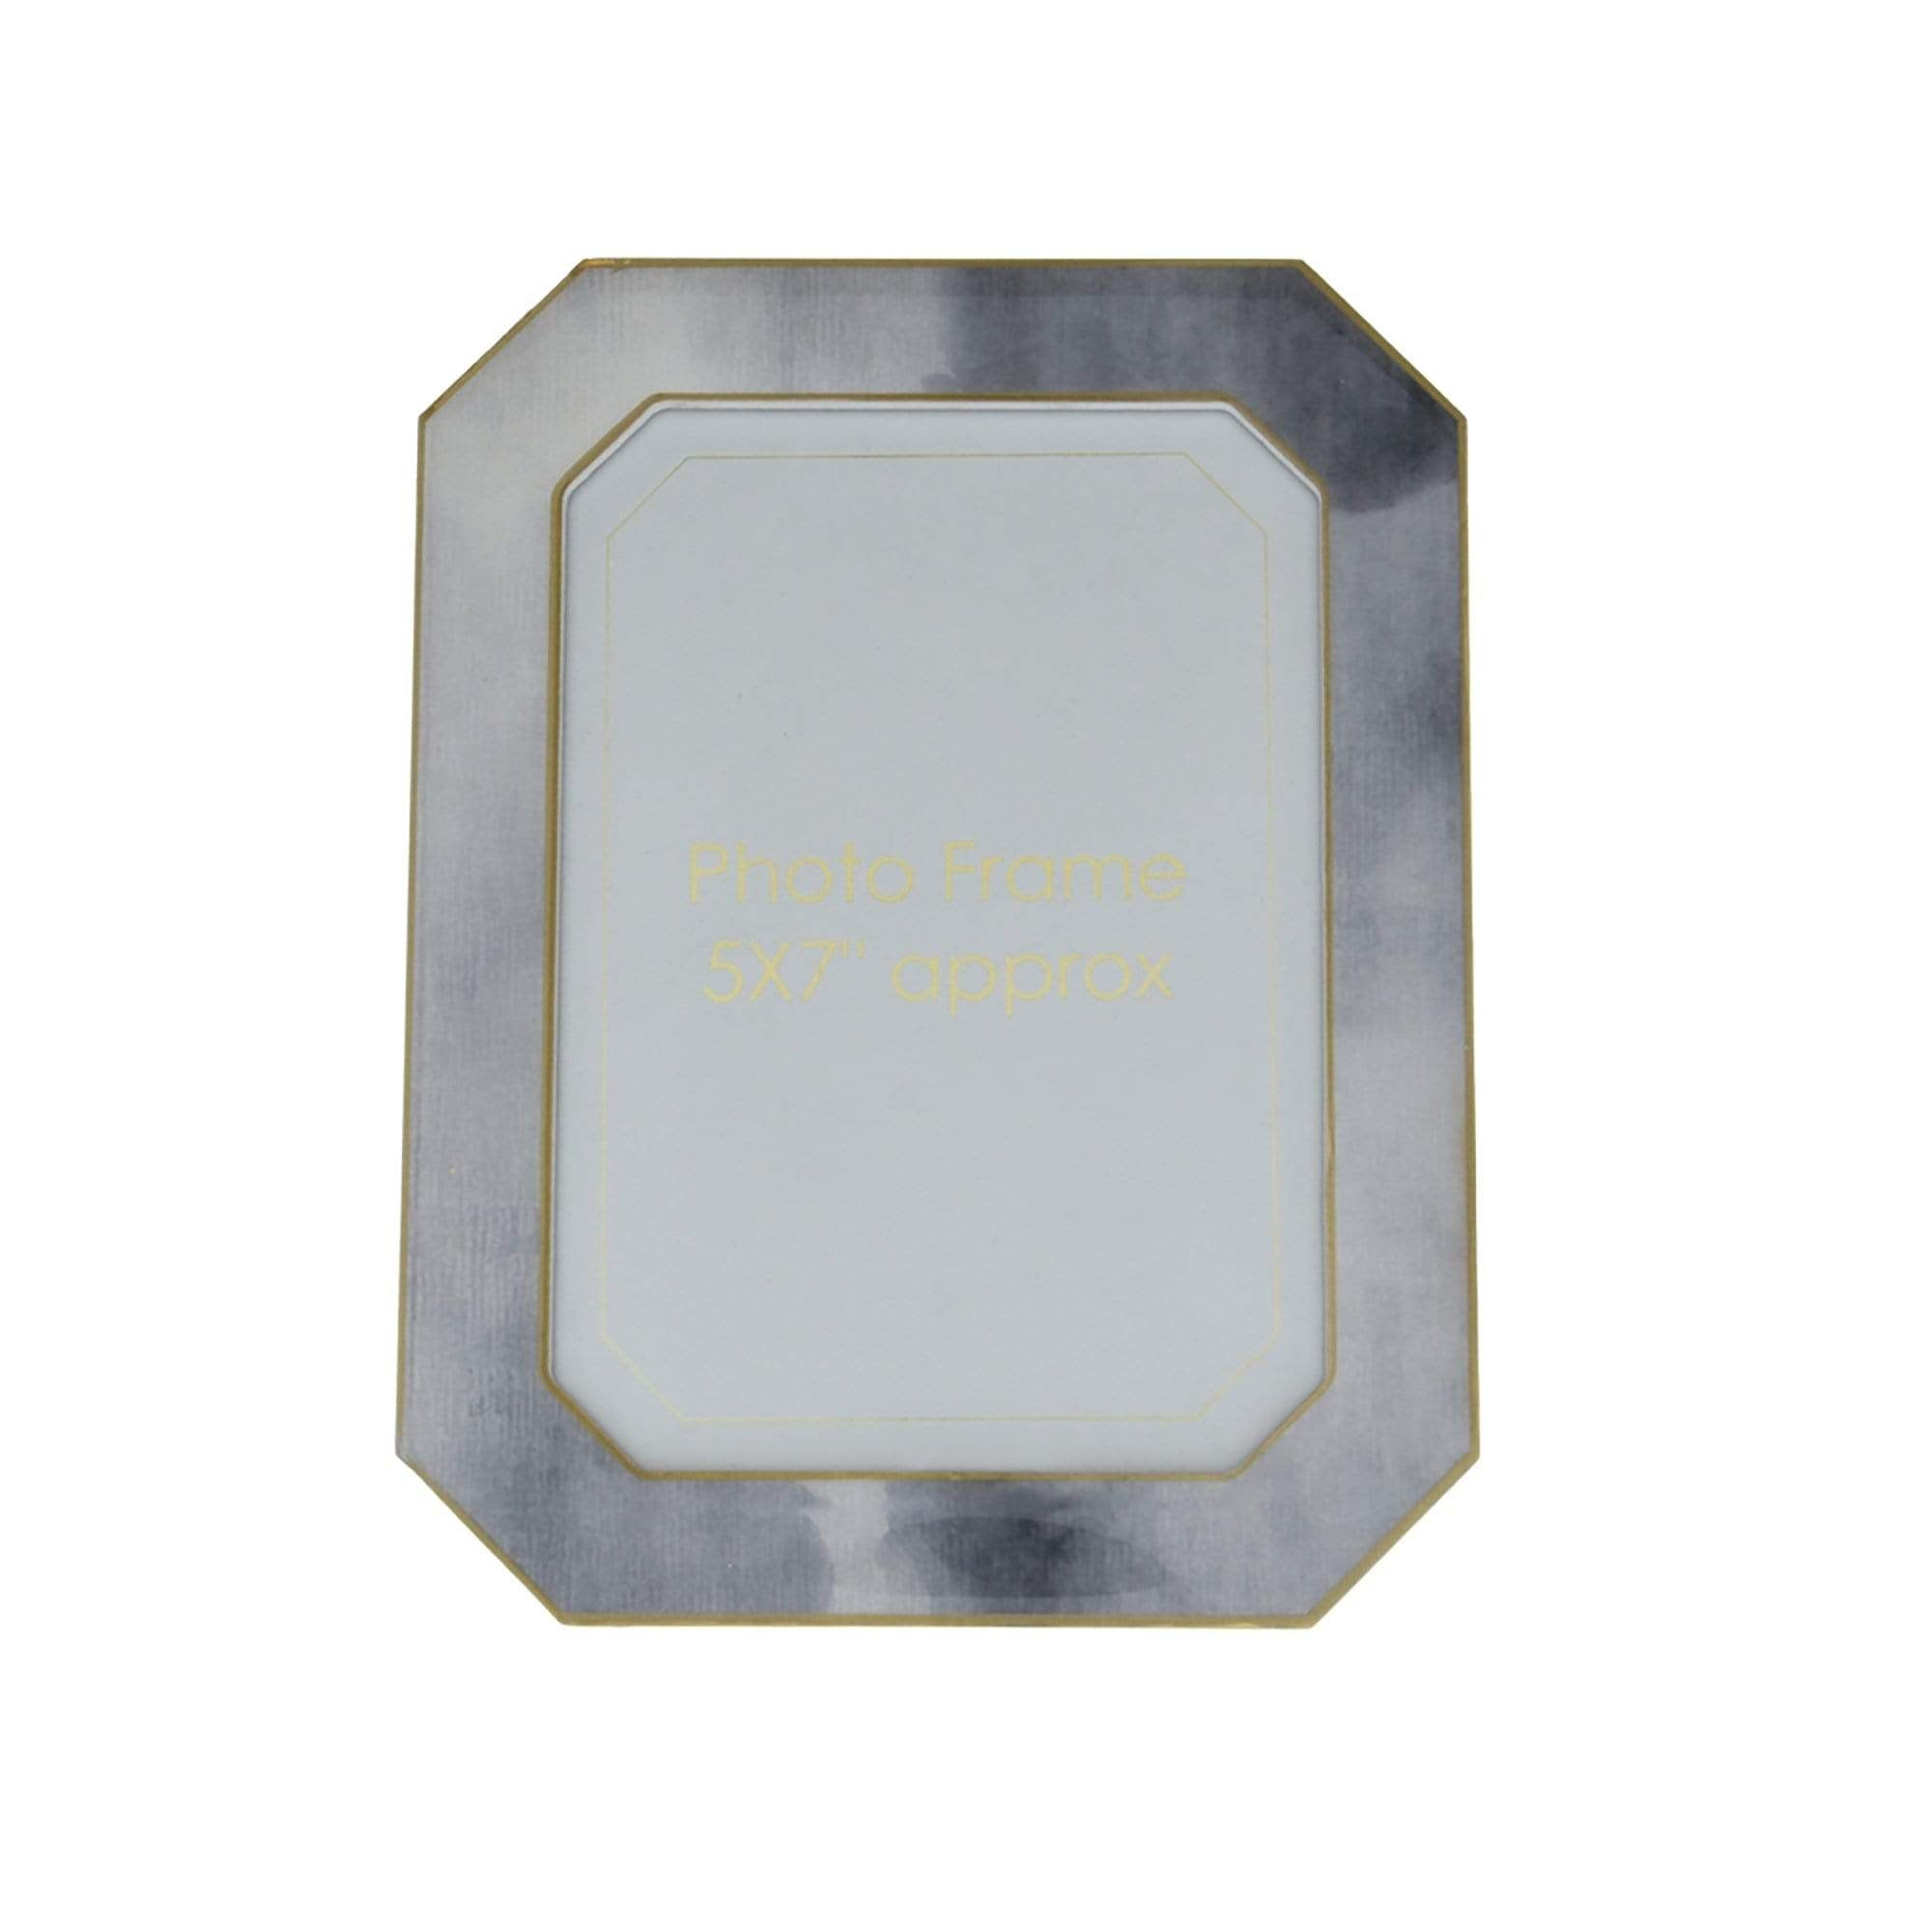 "Photo Frame Marble Effect with Gold Edges Grey 5x7"" 6PK"